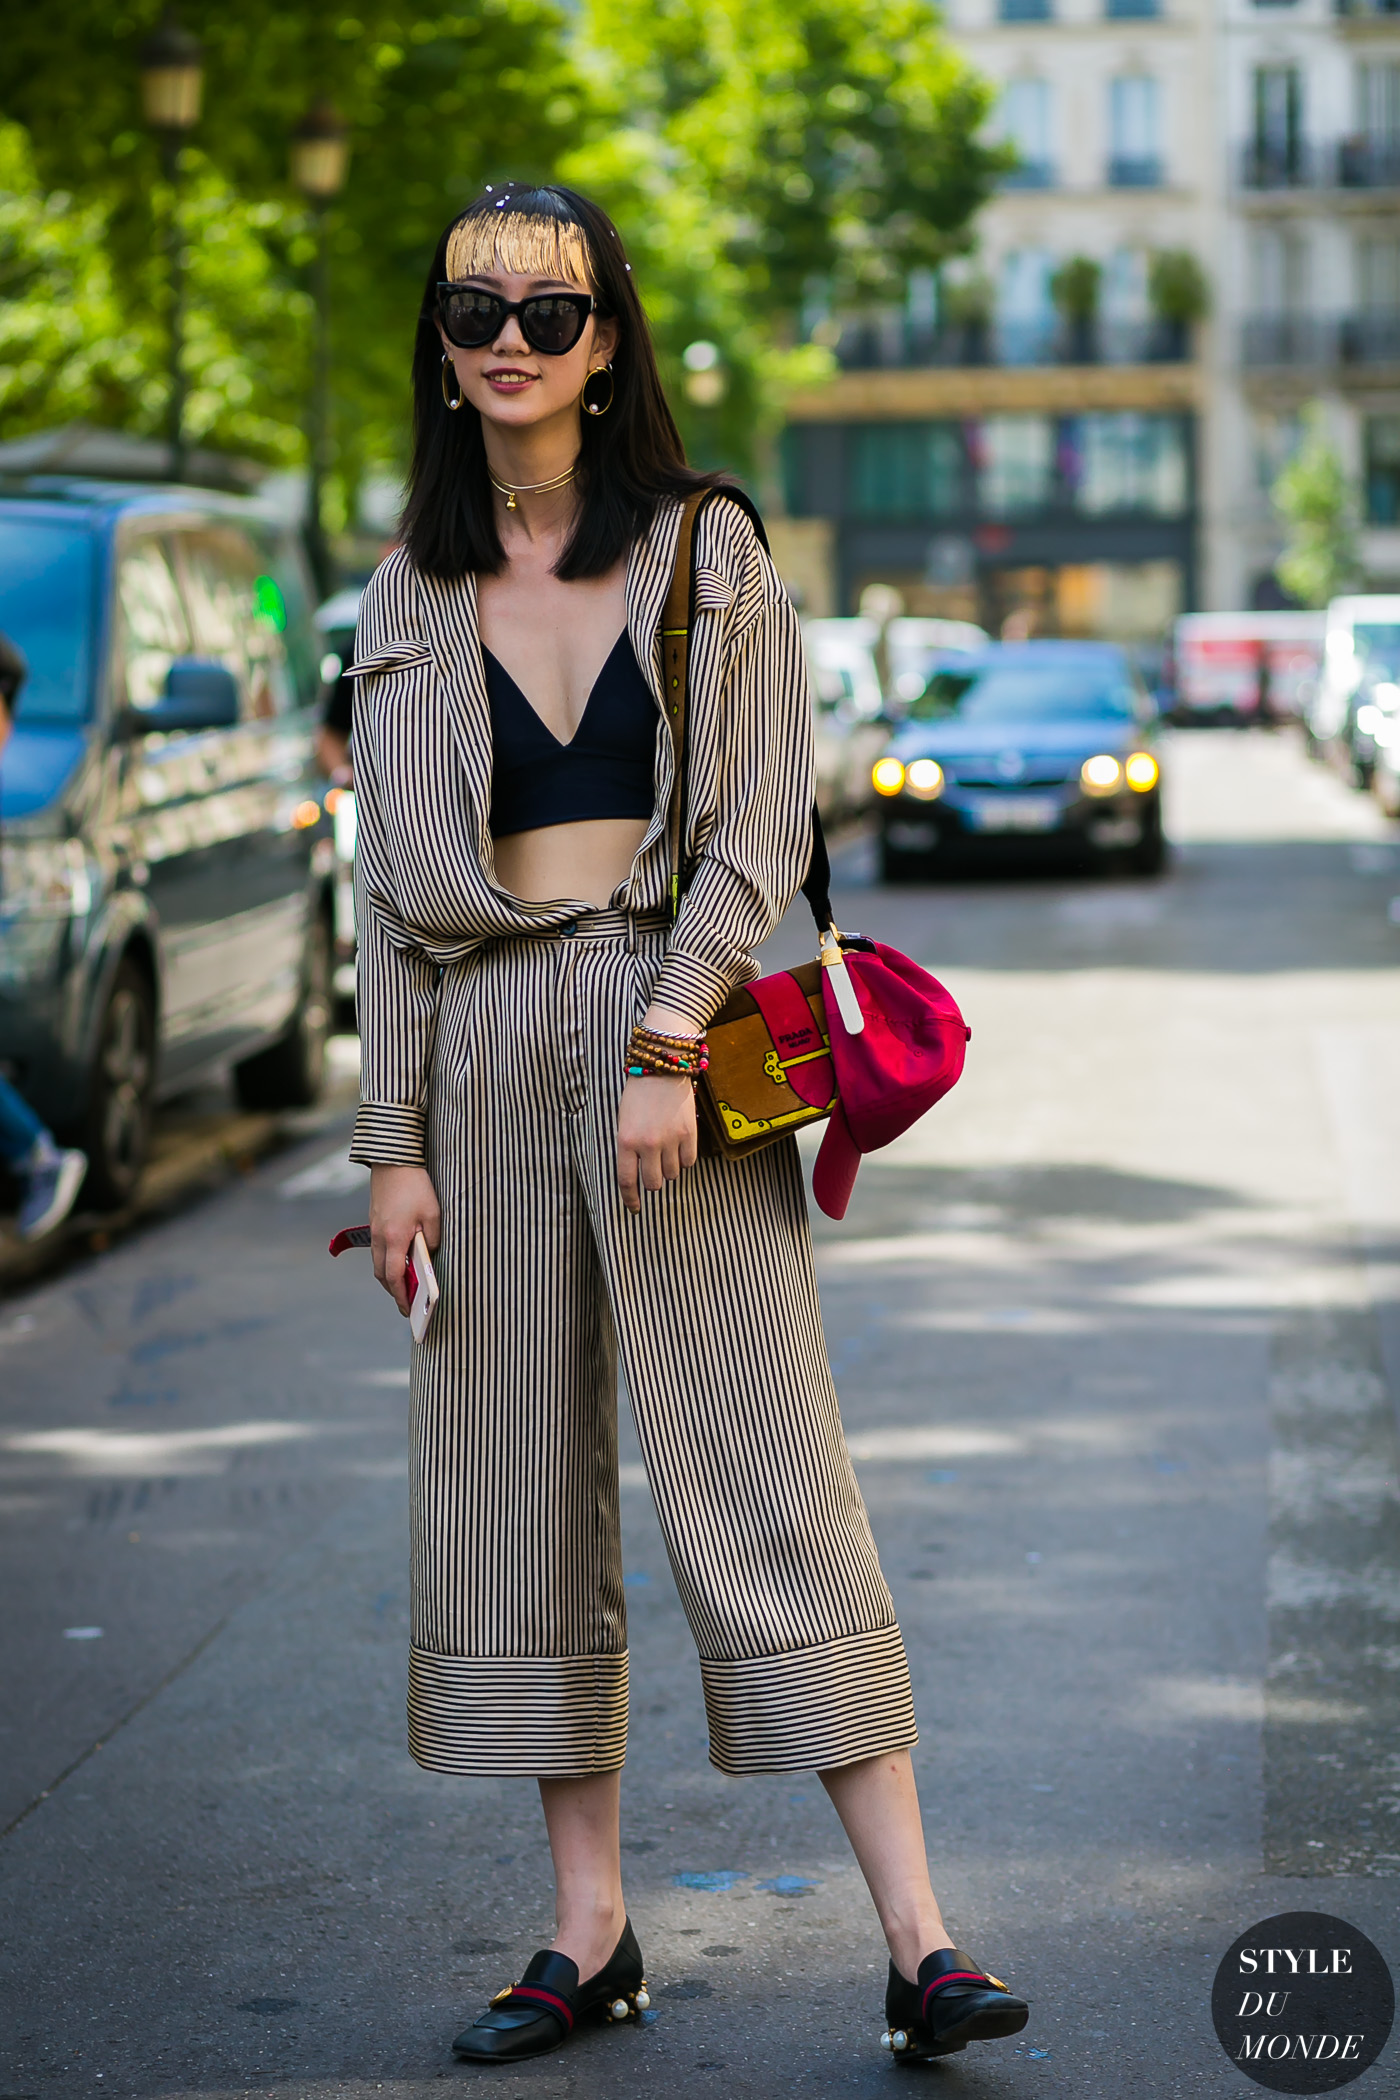 2005cfcd09e8f Haute Couture Fall / Winter 2017/18 Street Style: Striped look